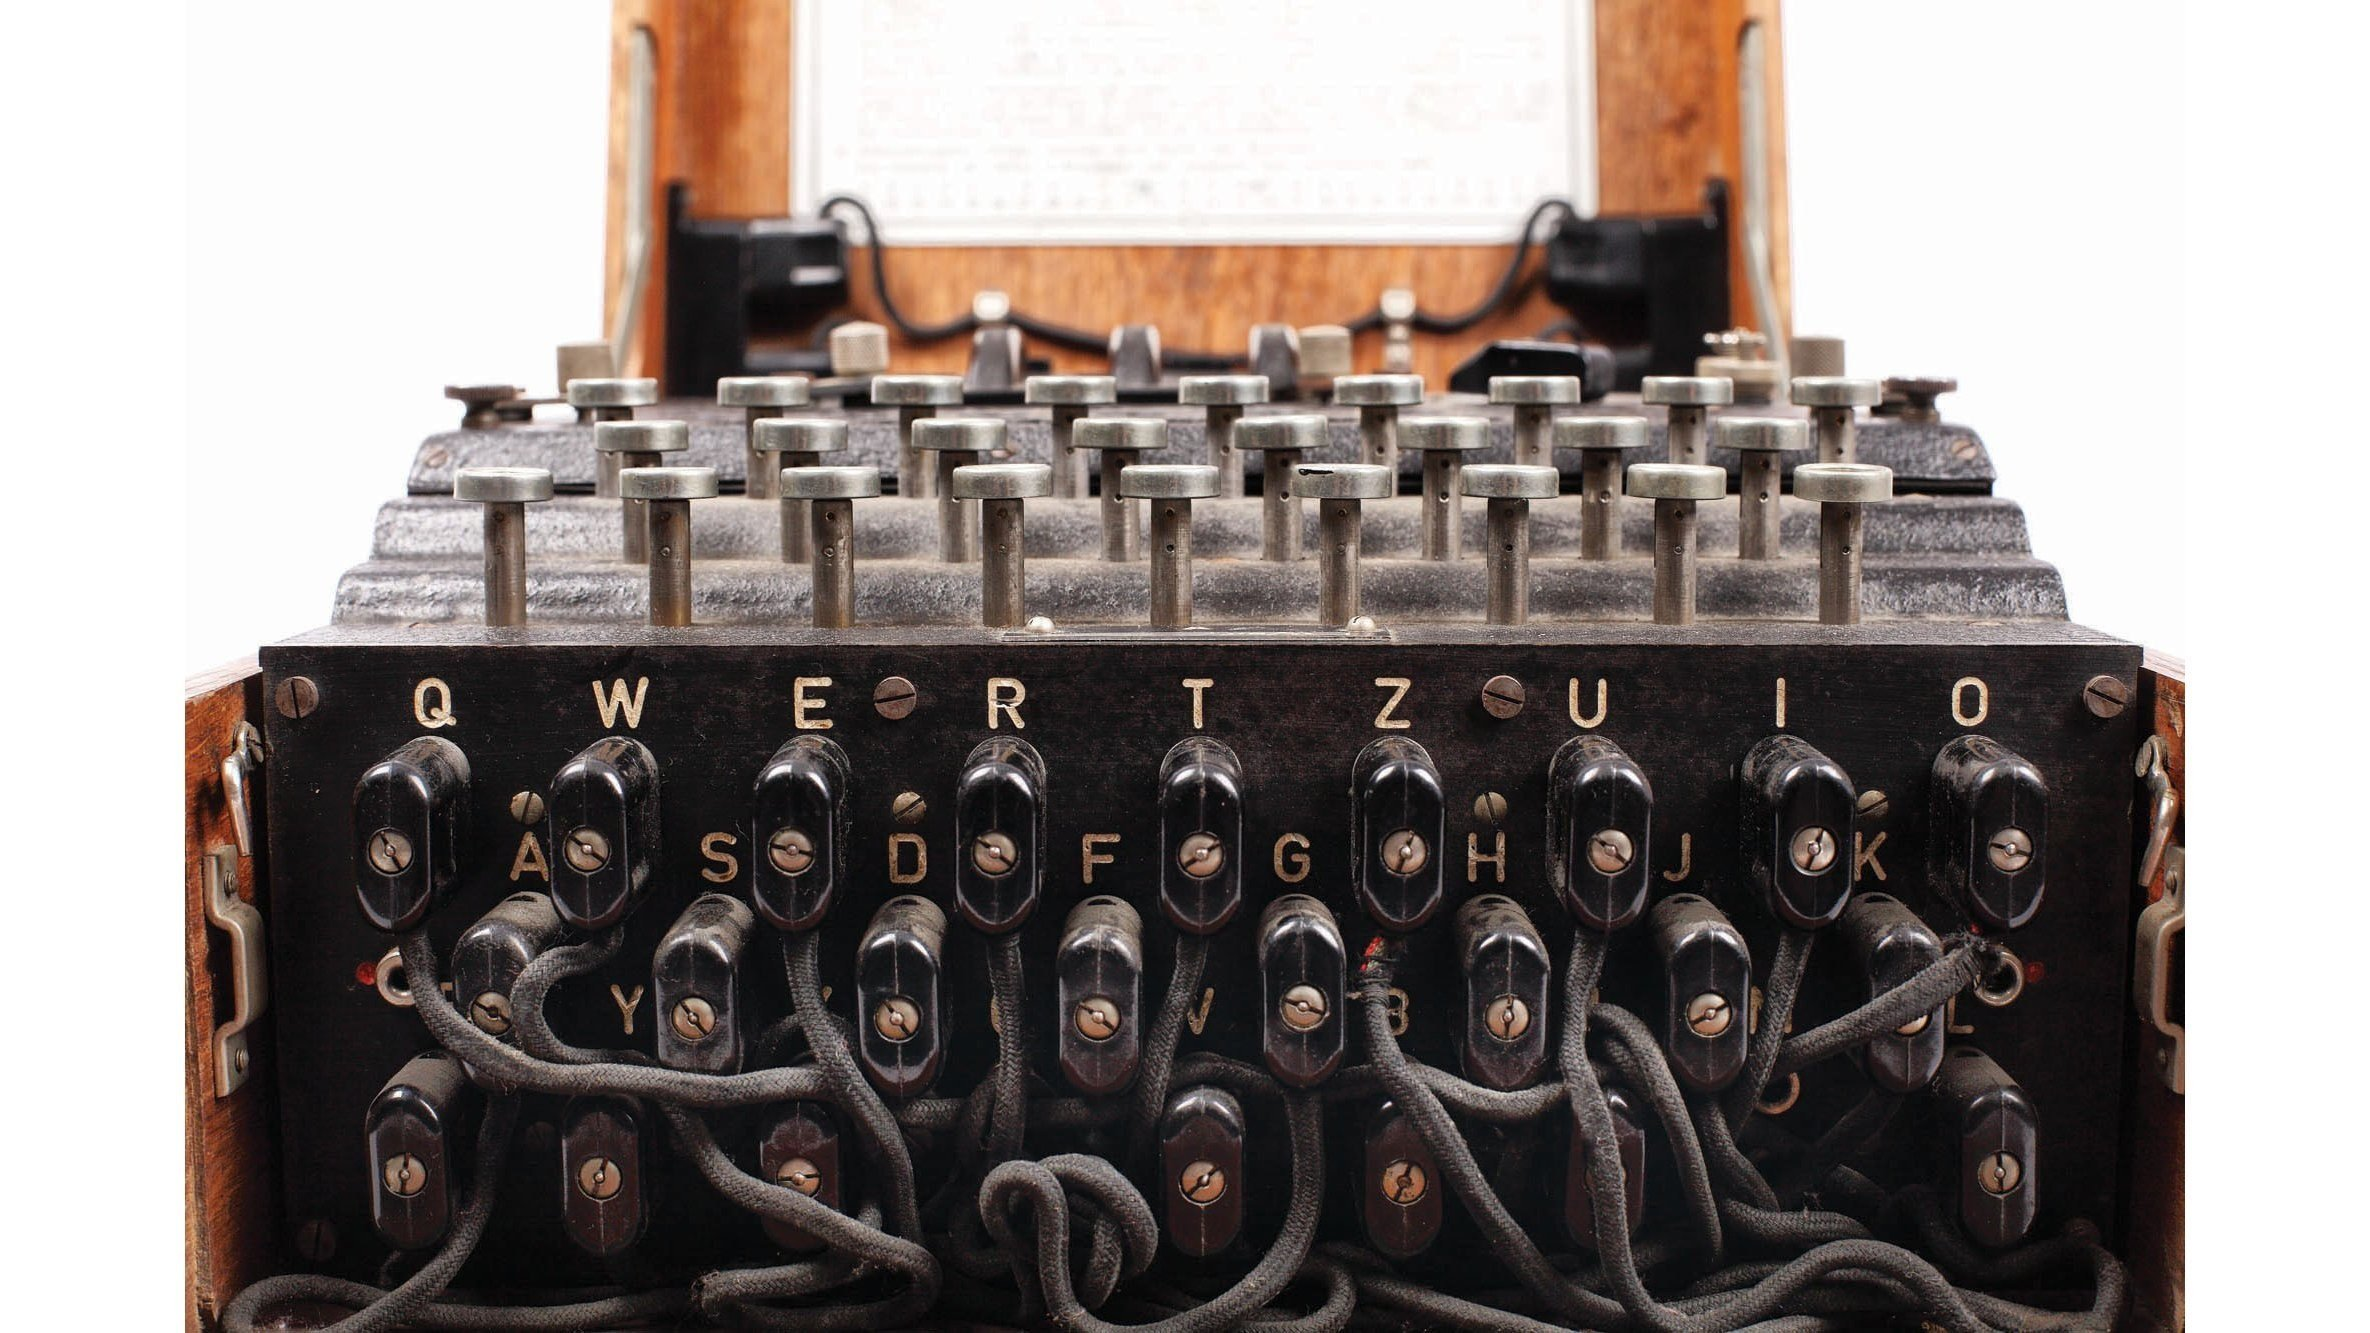 Bought for €100, World War Two Enigma machine sells for €45000